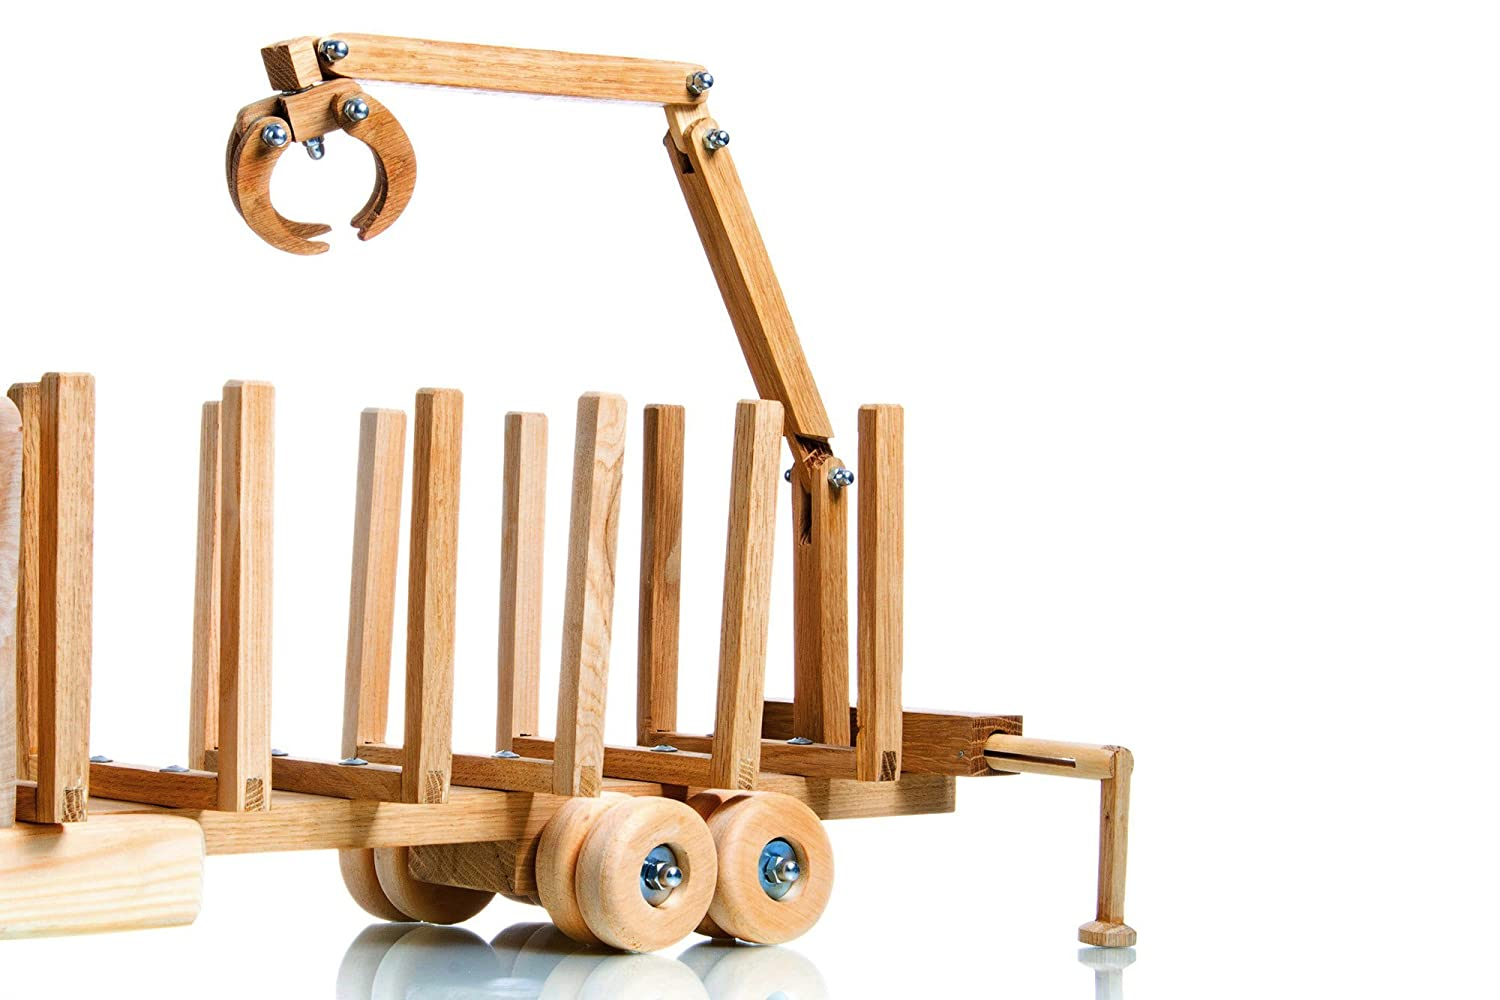 Montessori organic toy Wooden educational model for kids imagination /& motor skills Perfect birthday of Christmas gift idea for children and adults Original design wood truck for car lovers